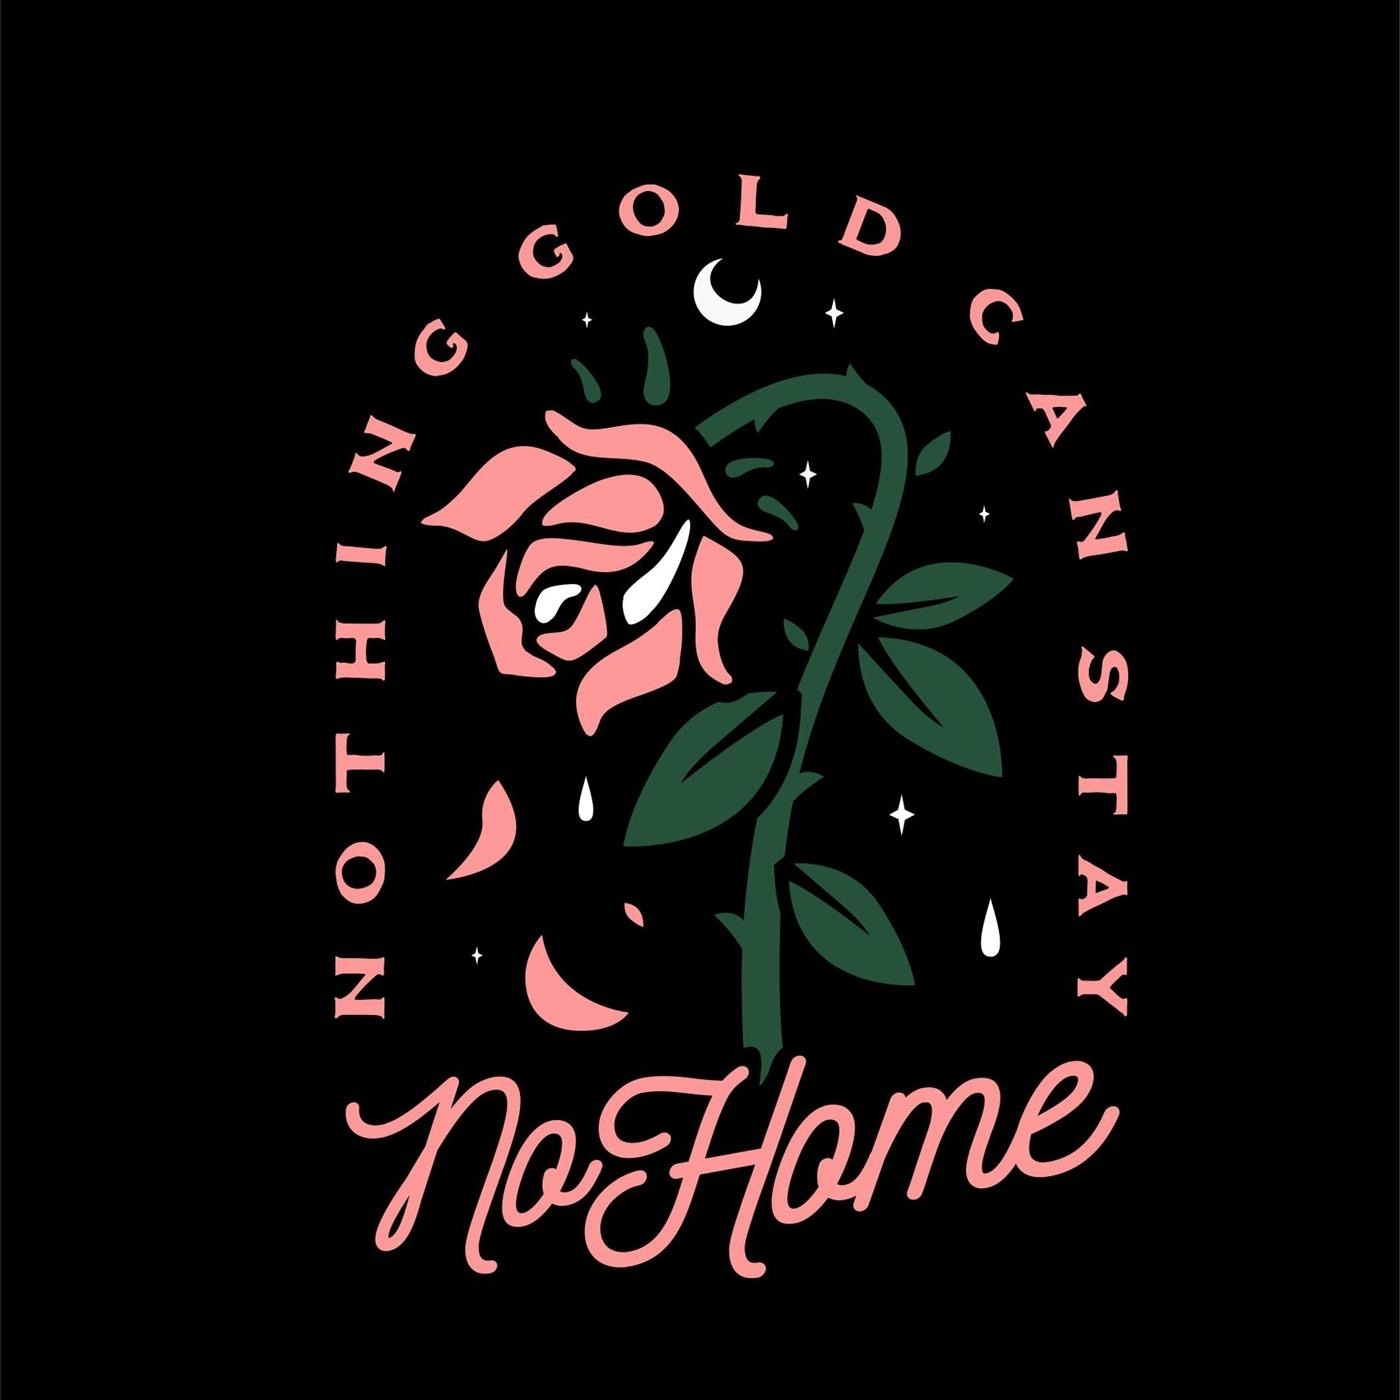 No Home - Nothing Gold Can Stay [single] (2019)